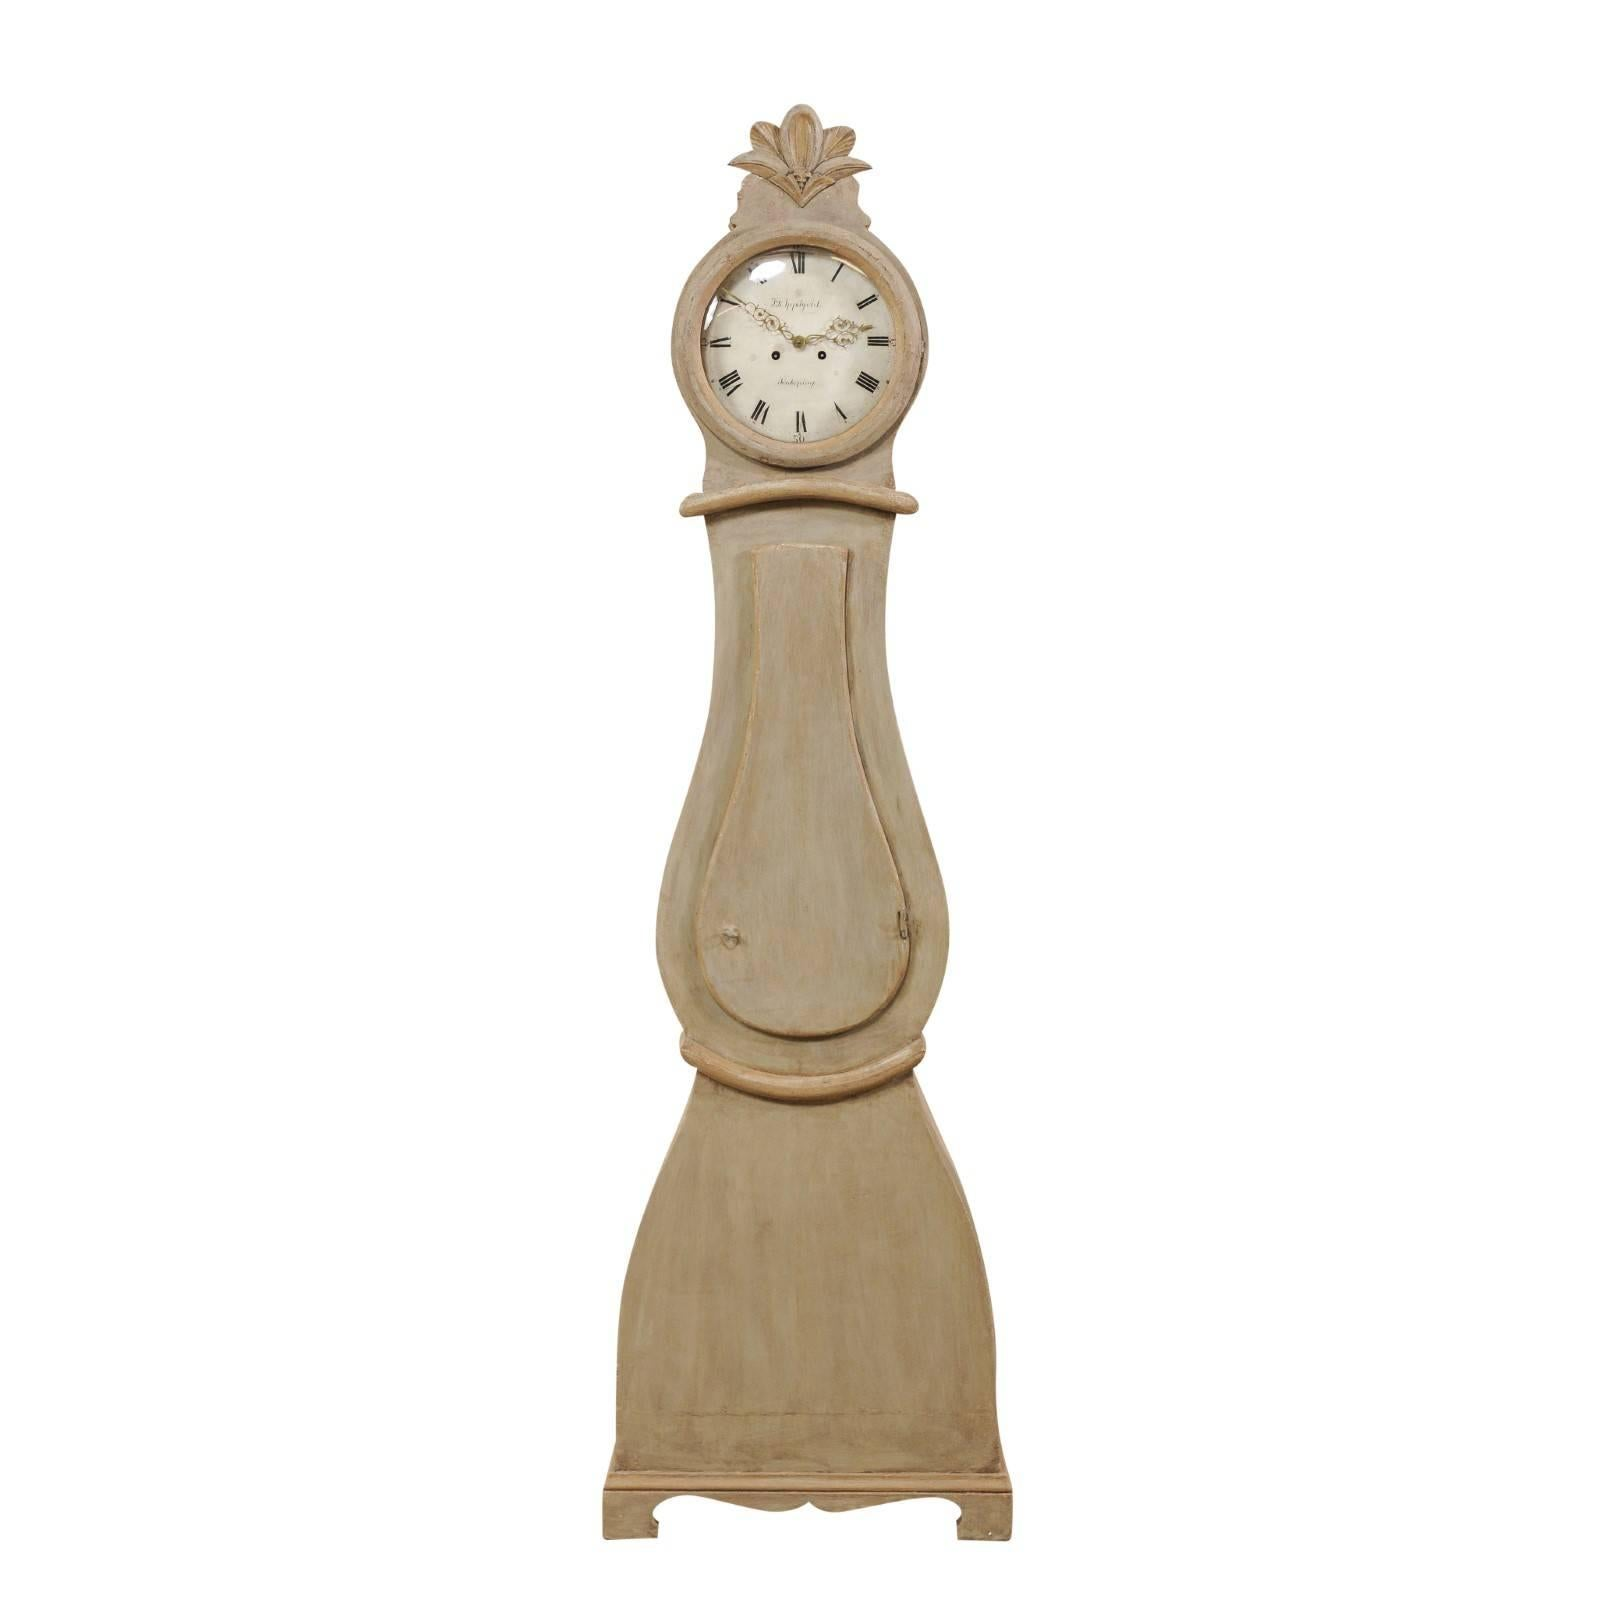 19th Century Swedish Painted Wood Floor Clock with Feathering Carved Crest